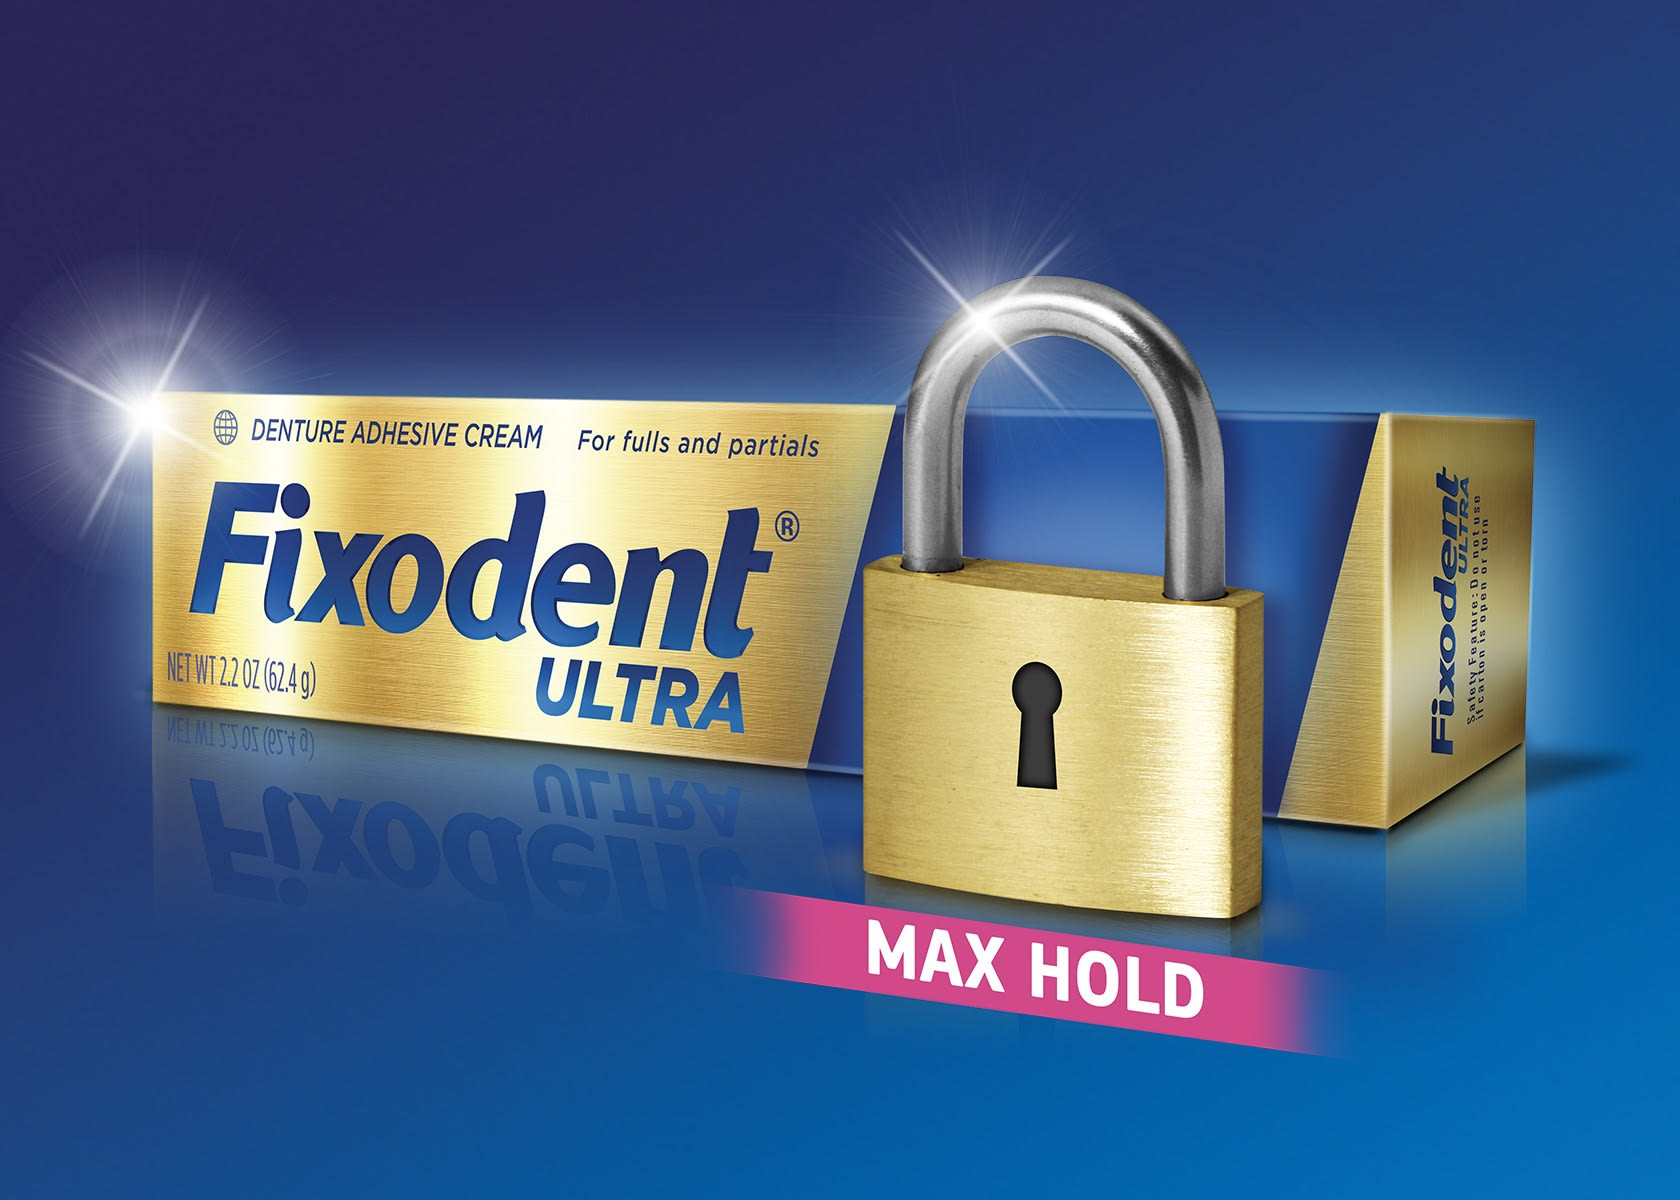 A graphic showing the gold and blue packaging of Fixodent Ultra Max Hold demtire adhesive with detail in the golden lock representing the Max Hold power.